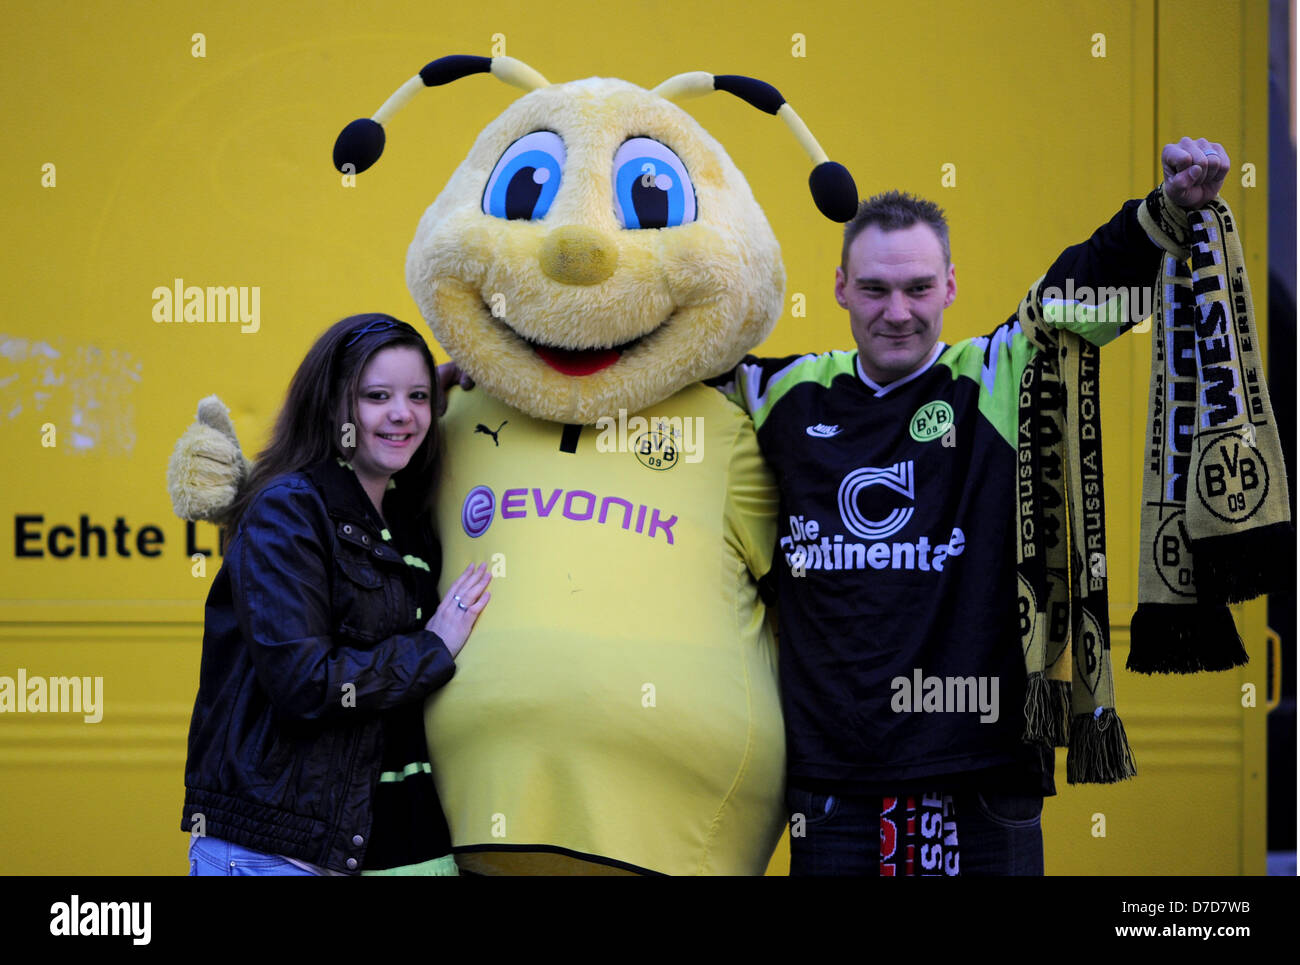 The mascot of Bundesliga soccer club Borussia Dortmund